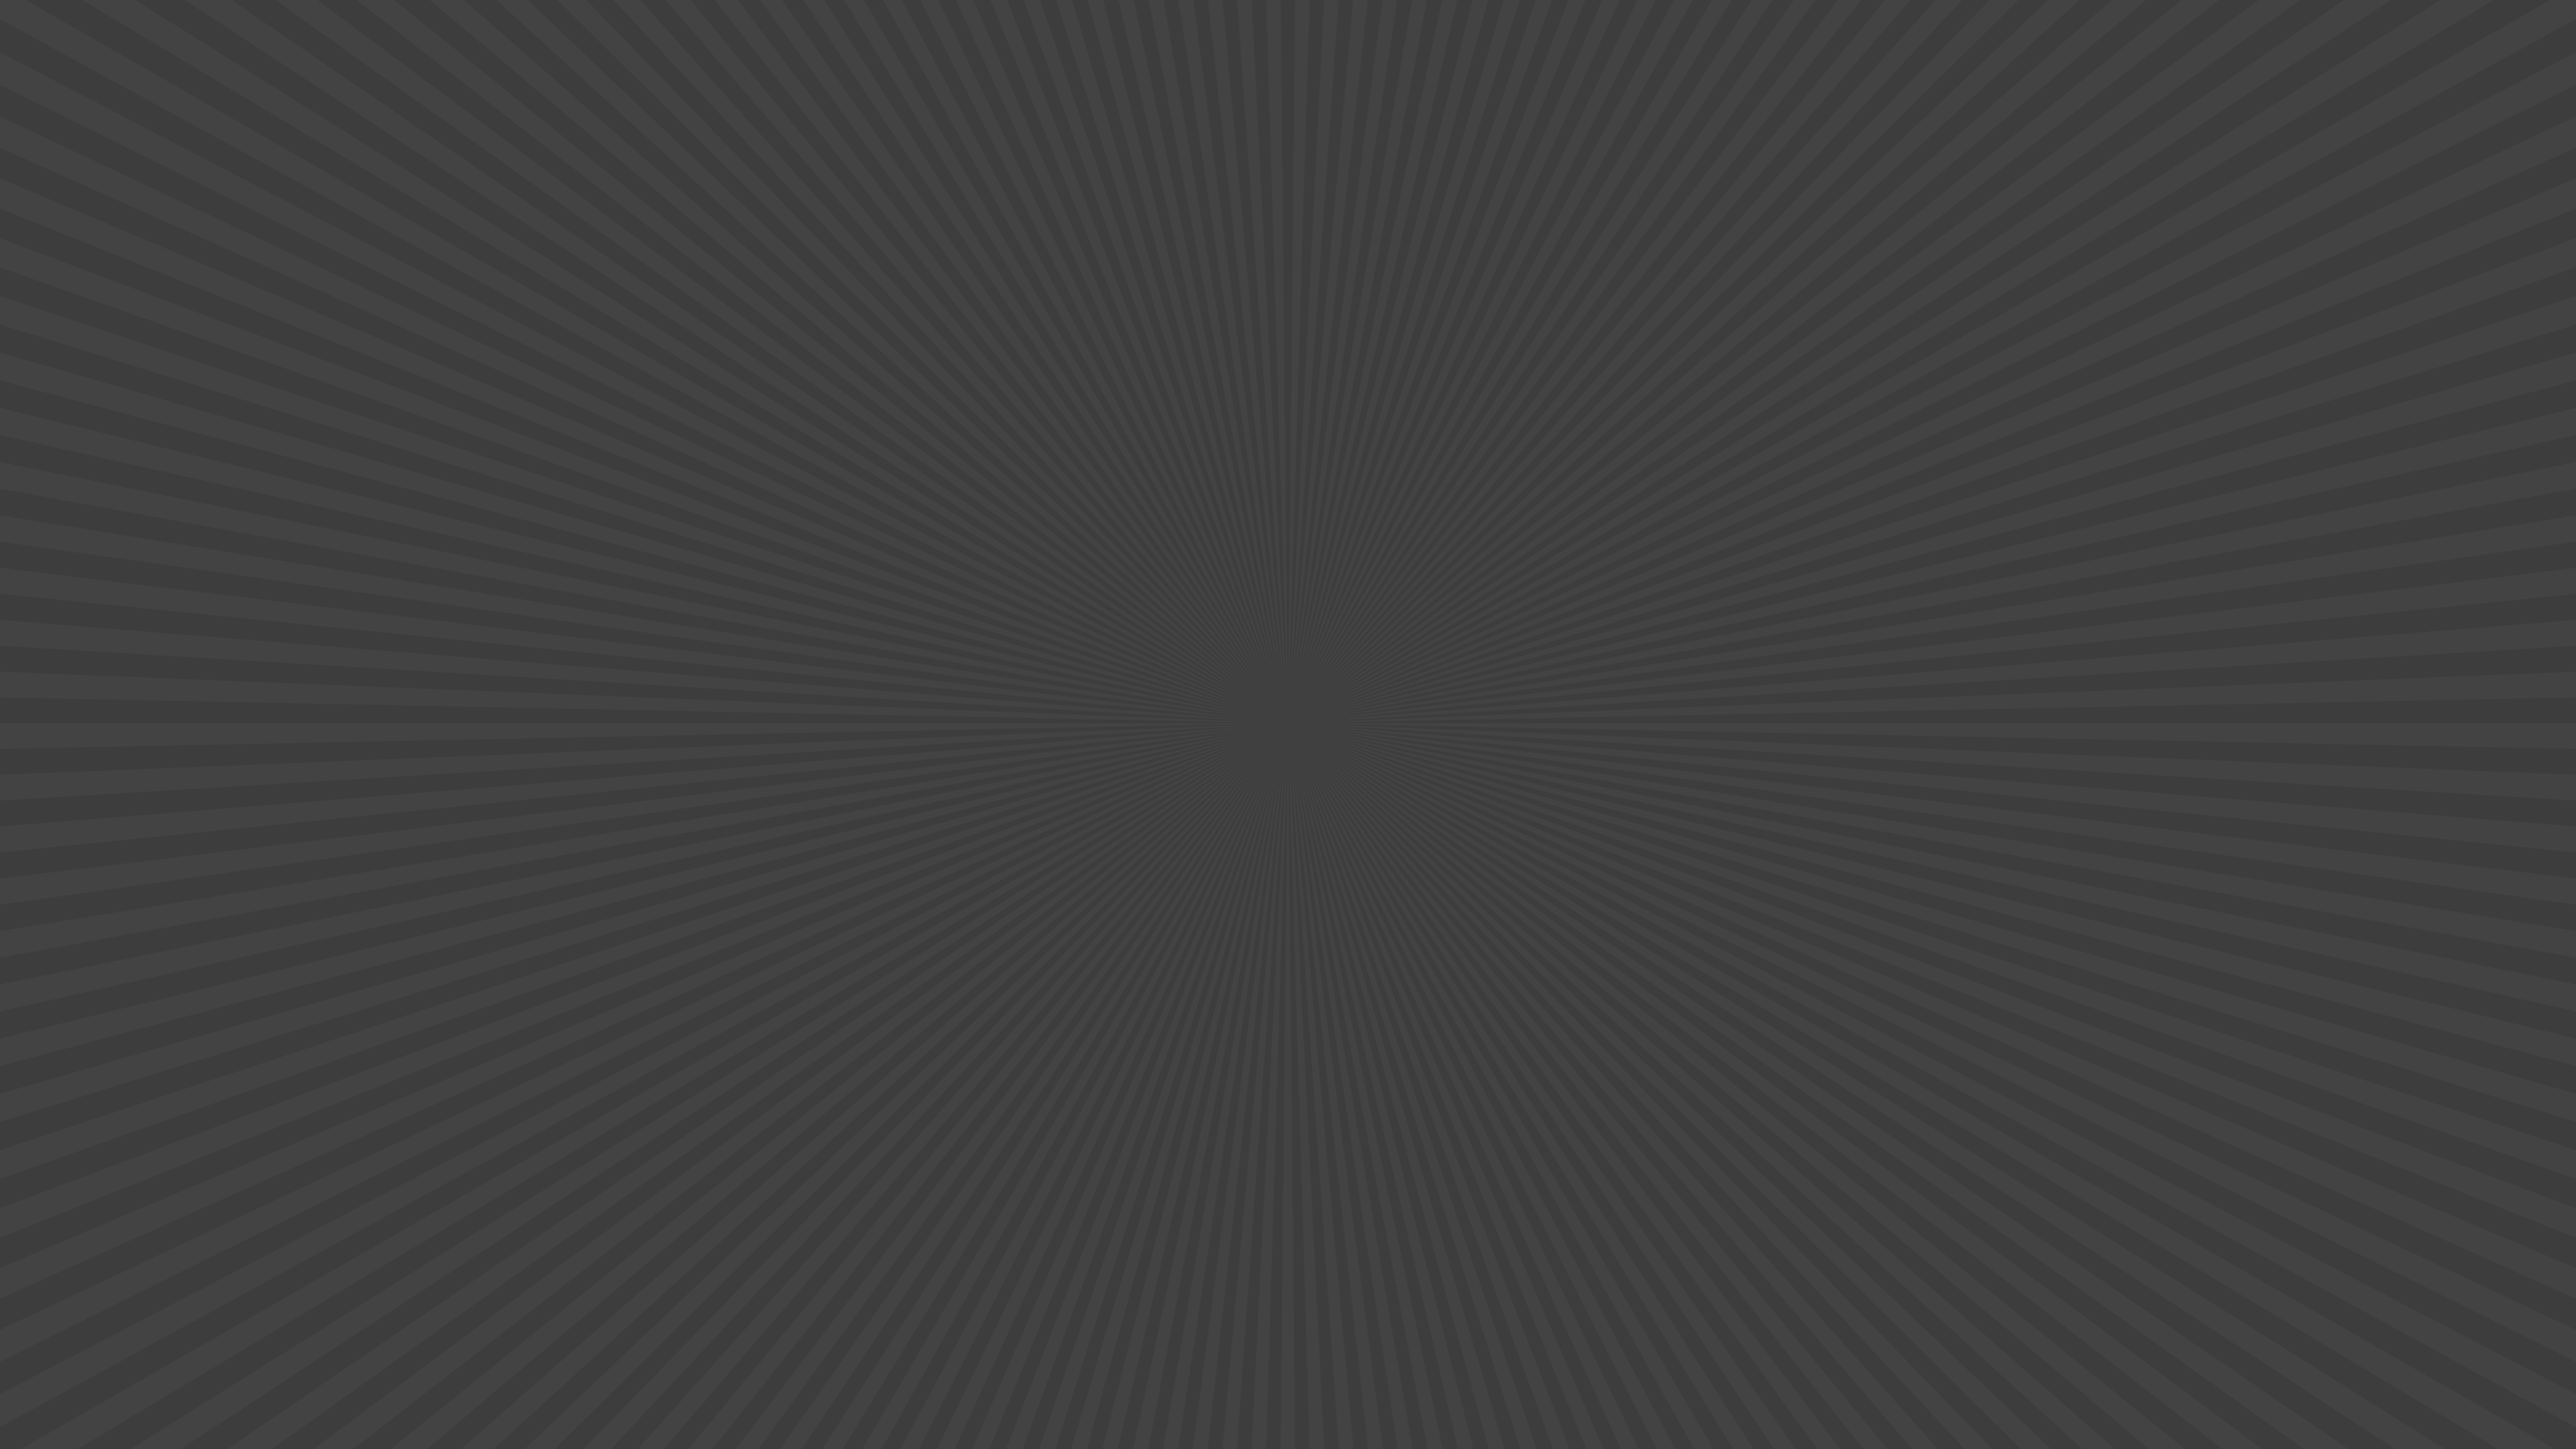 1680x1050 Simple Gray Background 4k 1680x1050 Resolution Hd